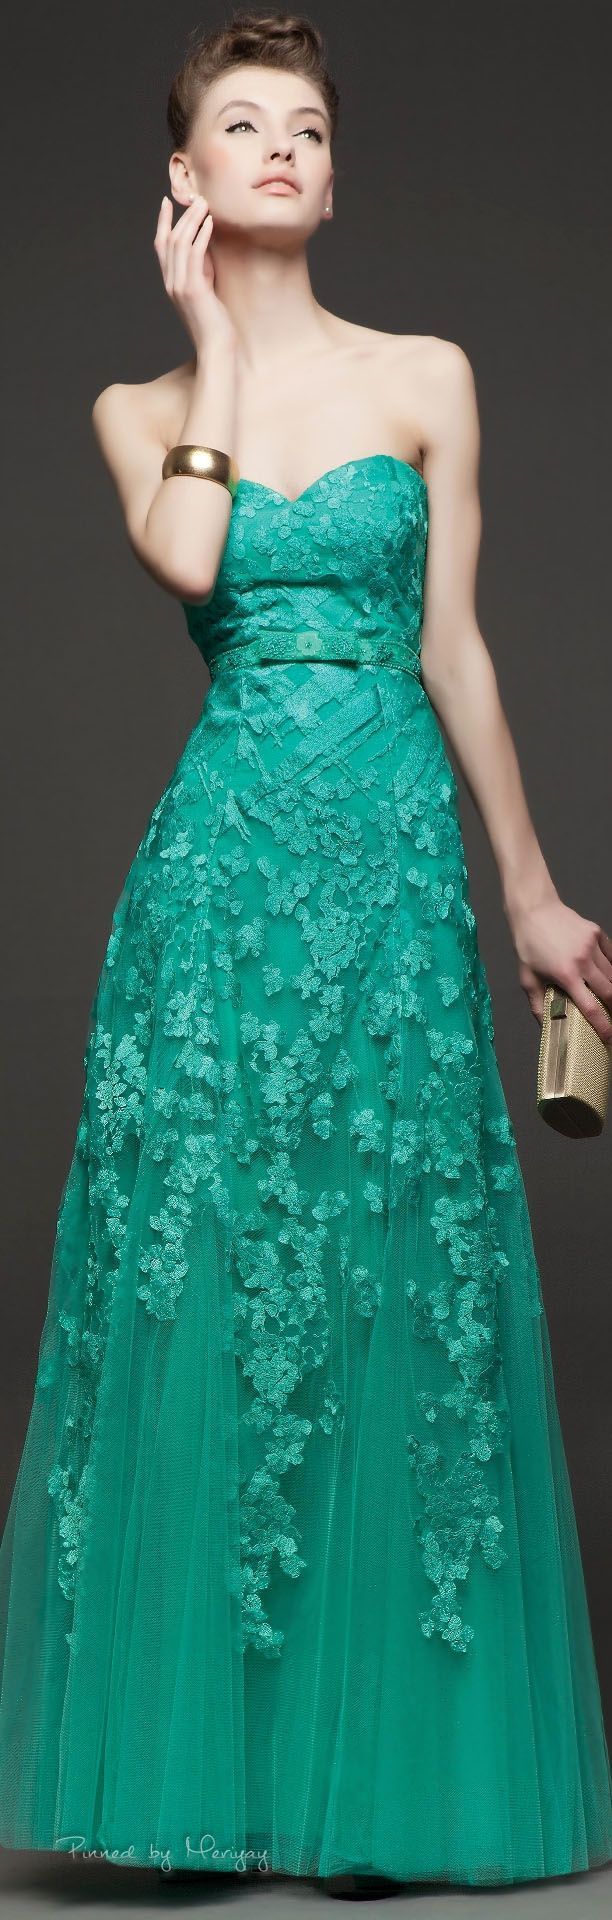 1602 best Dresses: Green images on Pinterest | Evening gowns, Ball ...